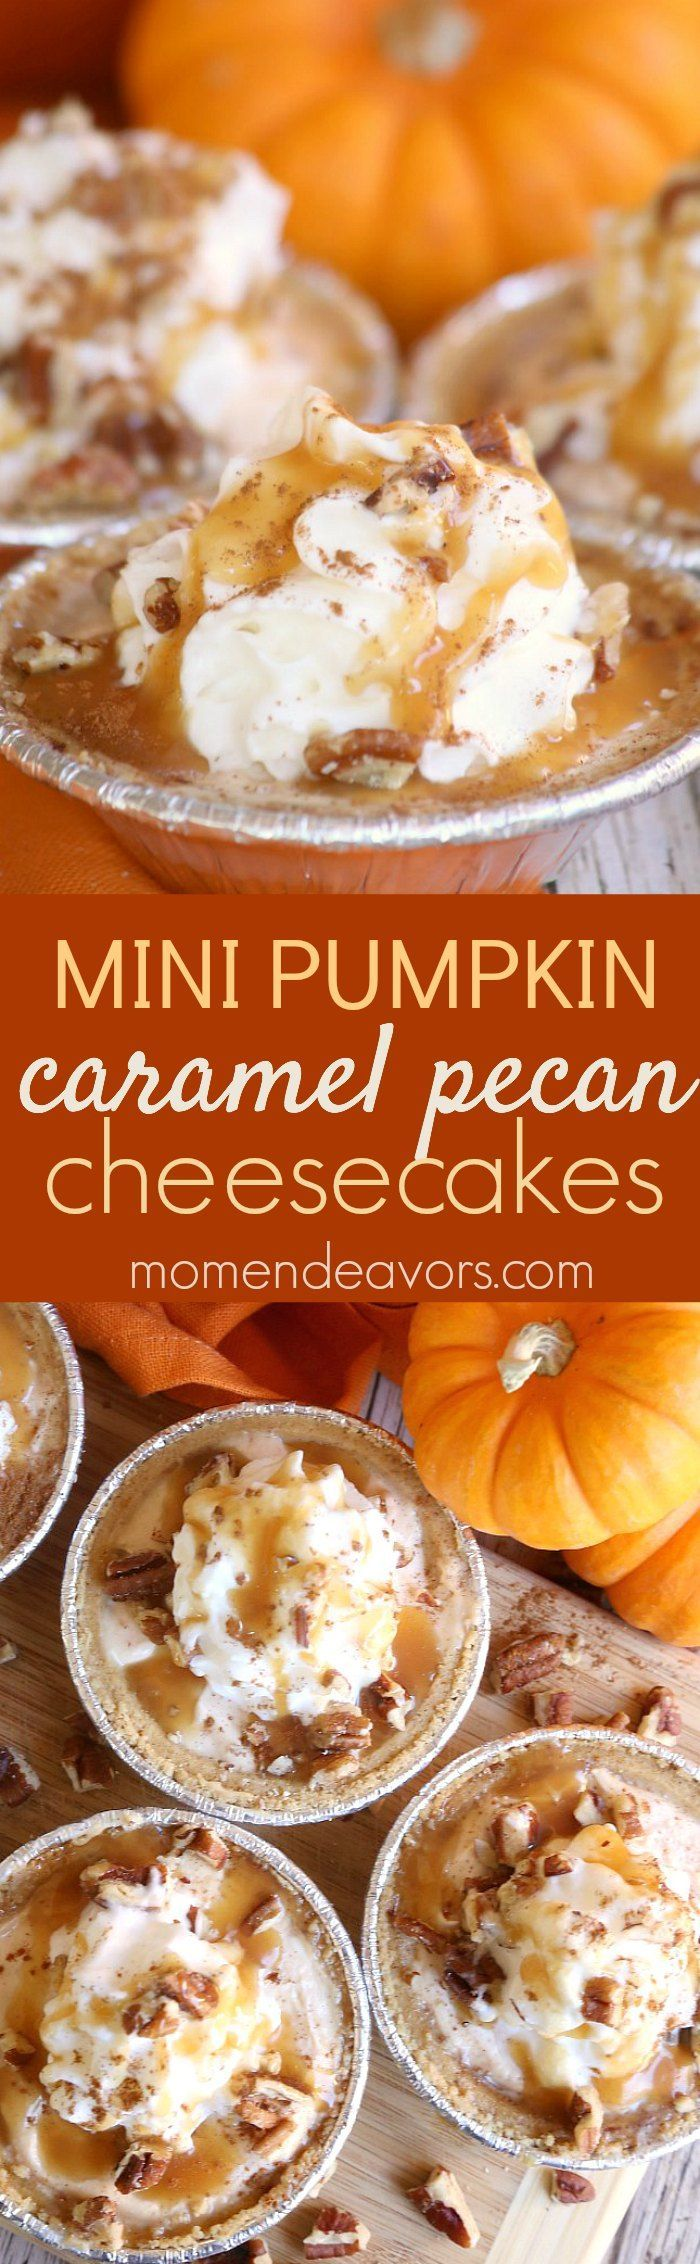 Mini Pumpkin Caramel Pecan No-Bake Cheesecakes! This tasty no-bake pumpkin pie recipe is perfect for fall and an easy Thanksgiving dessert!